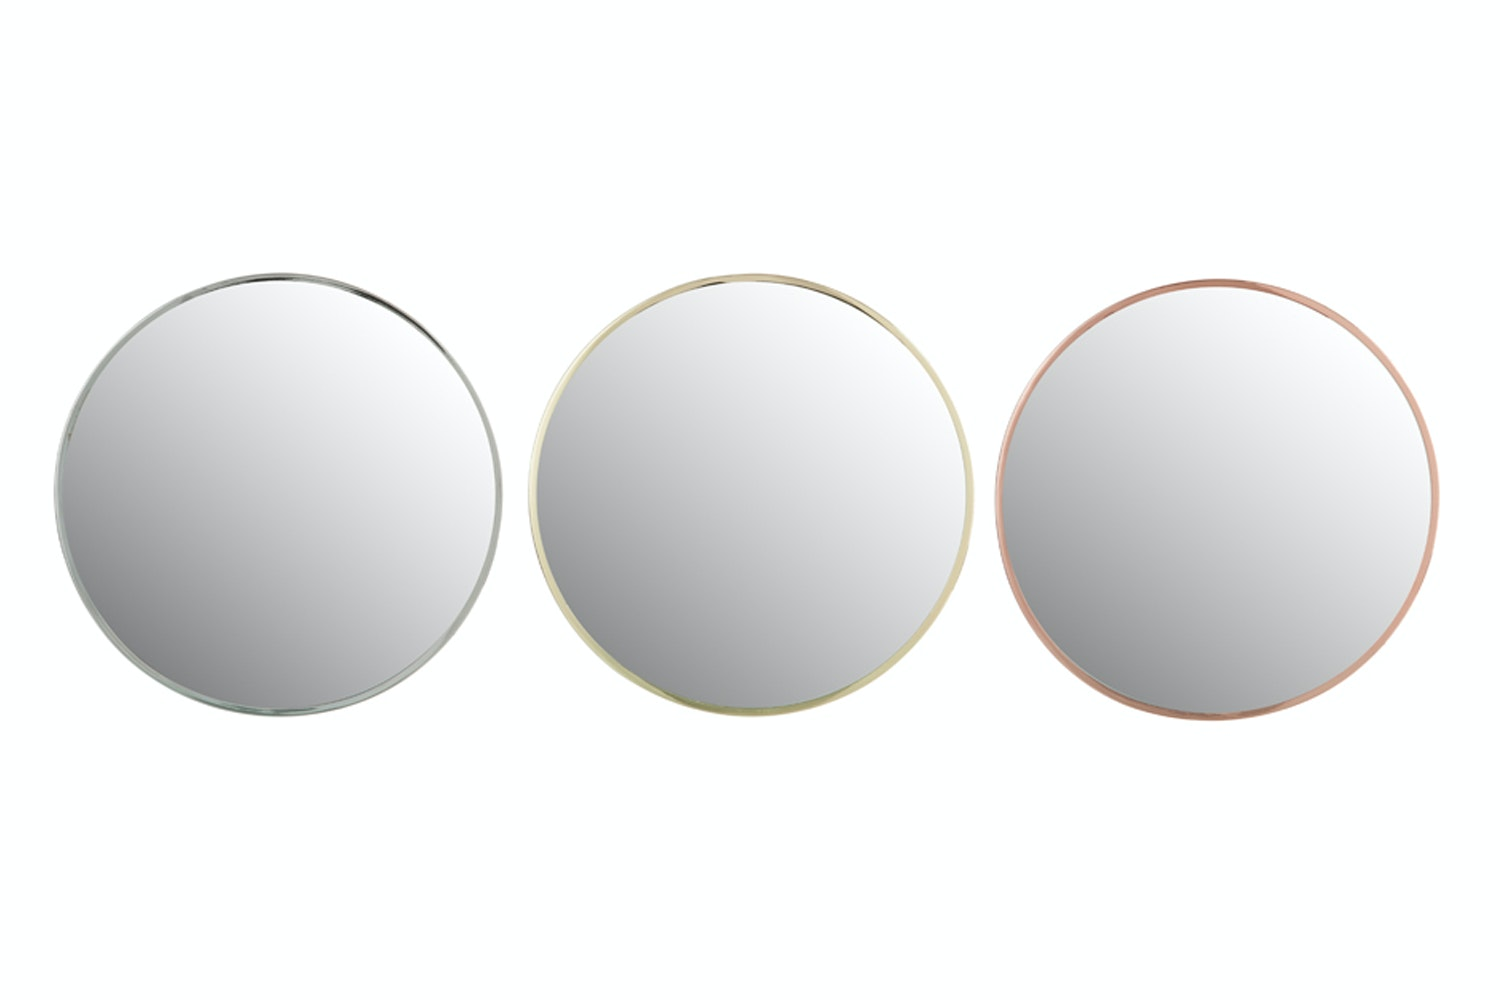 Small Round Mirror in Metal Frame